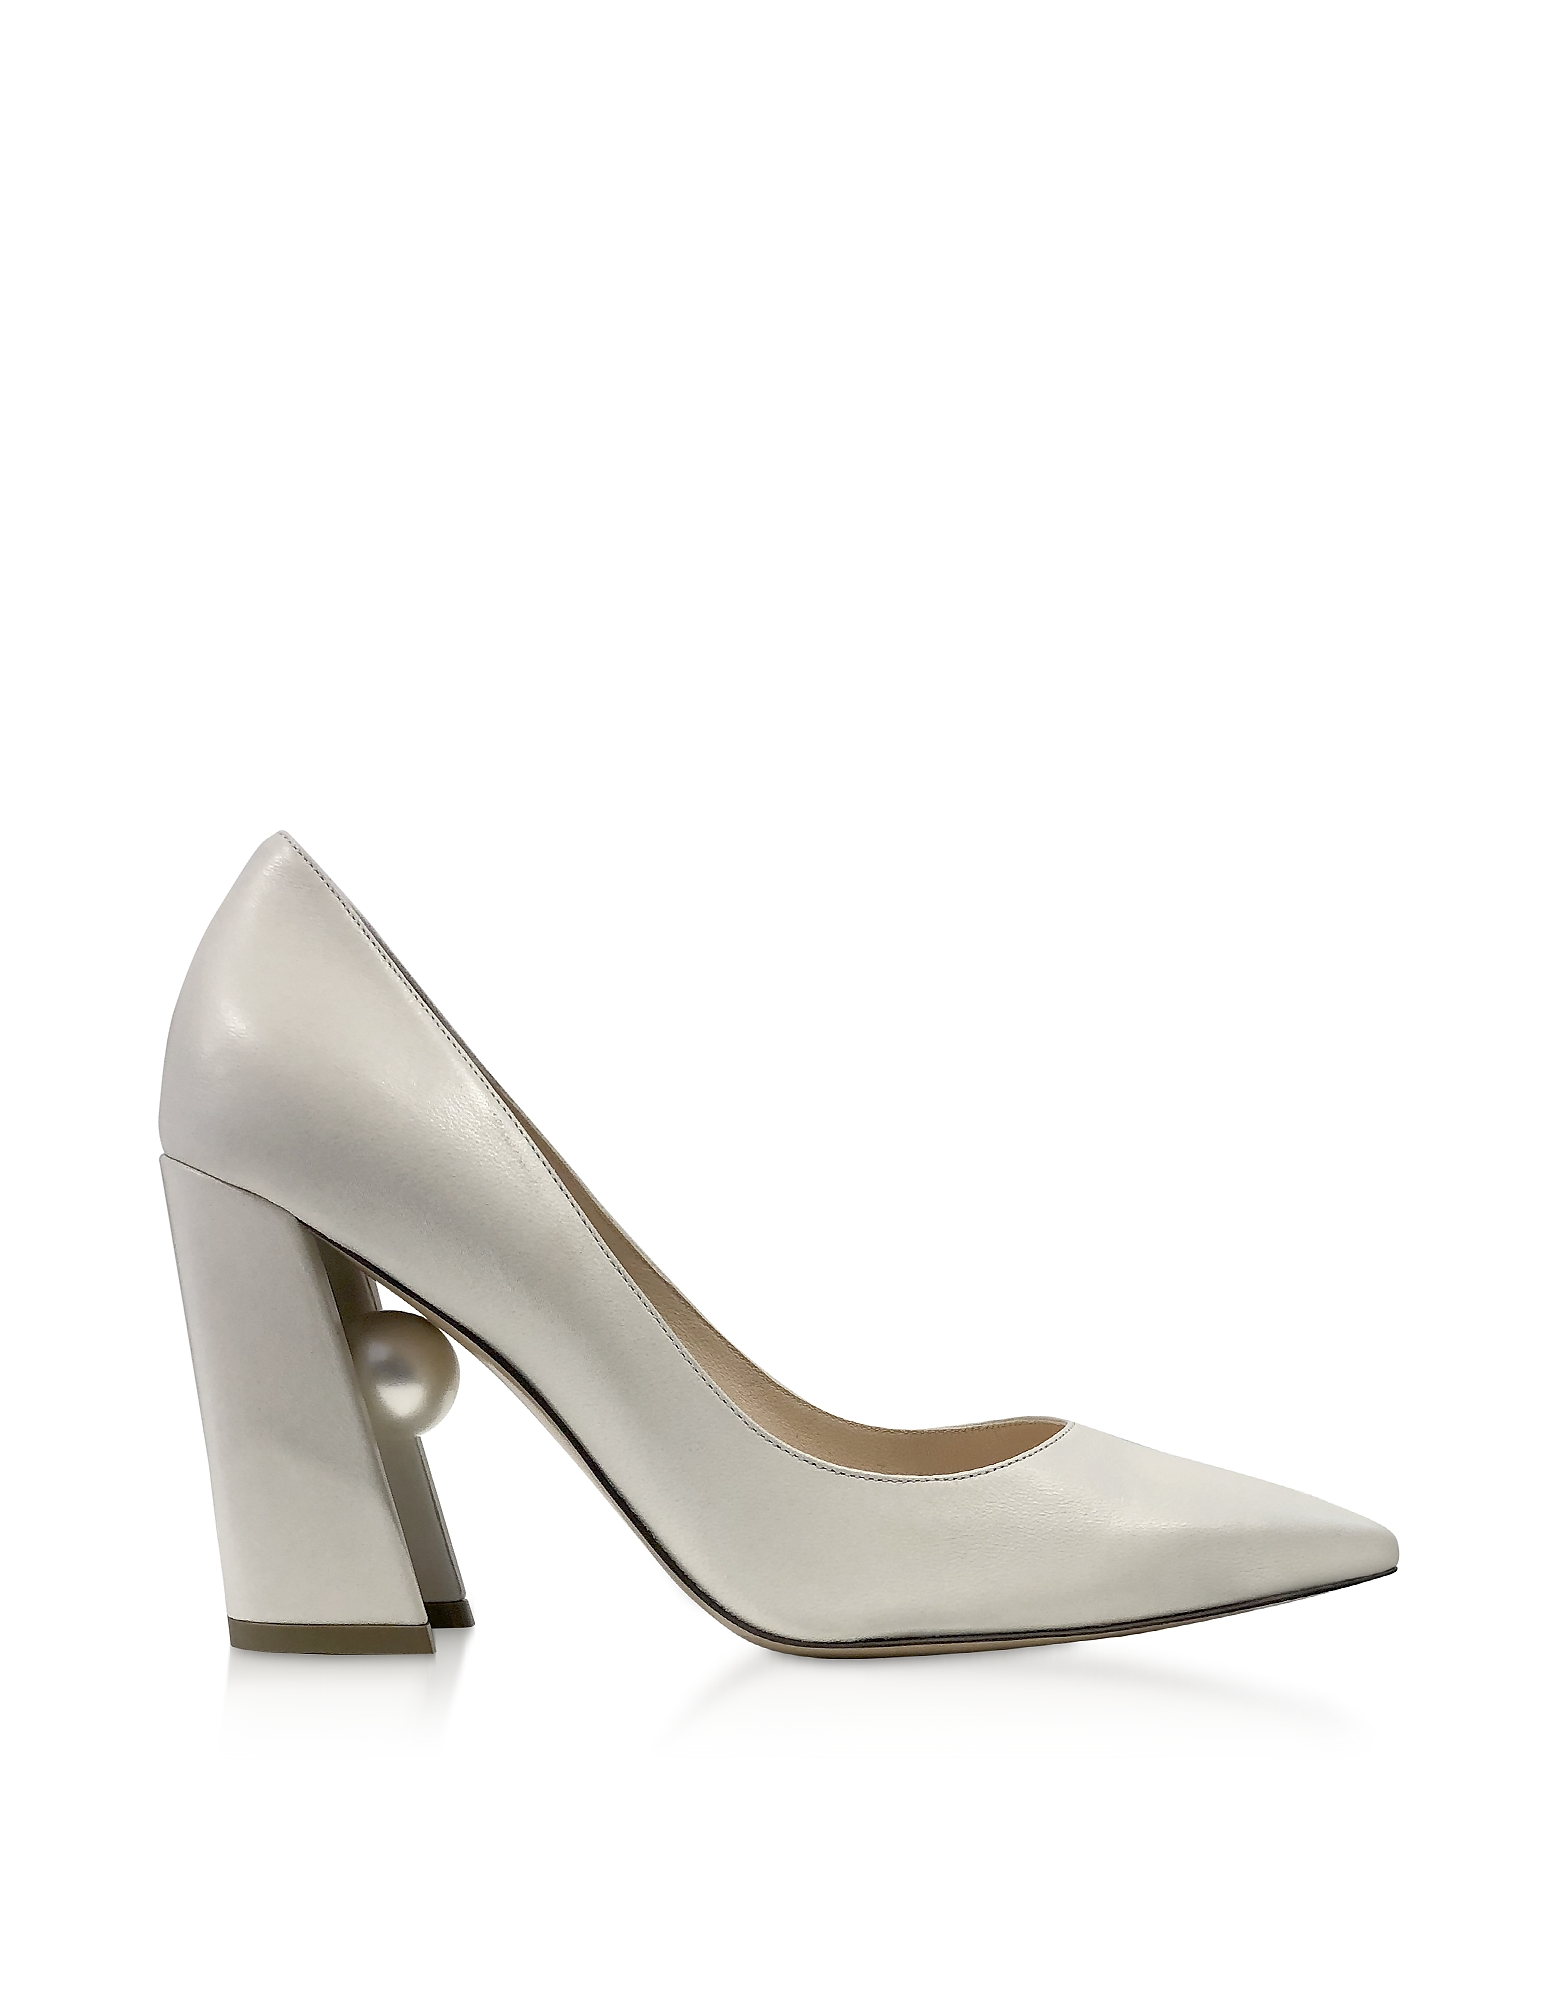 Nicholas Kirkwood Designer Shoes, Ecru Nappa Leather 90mm Miri Pumps